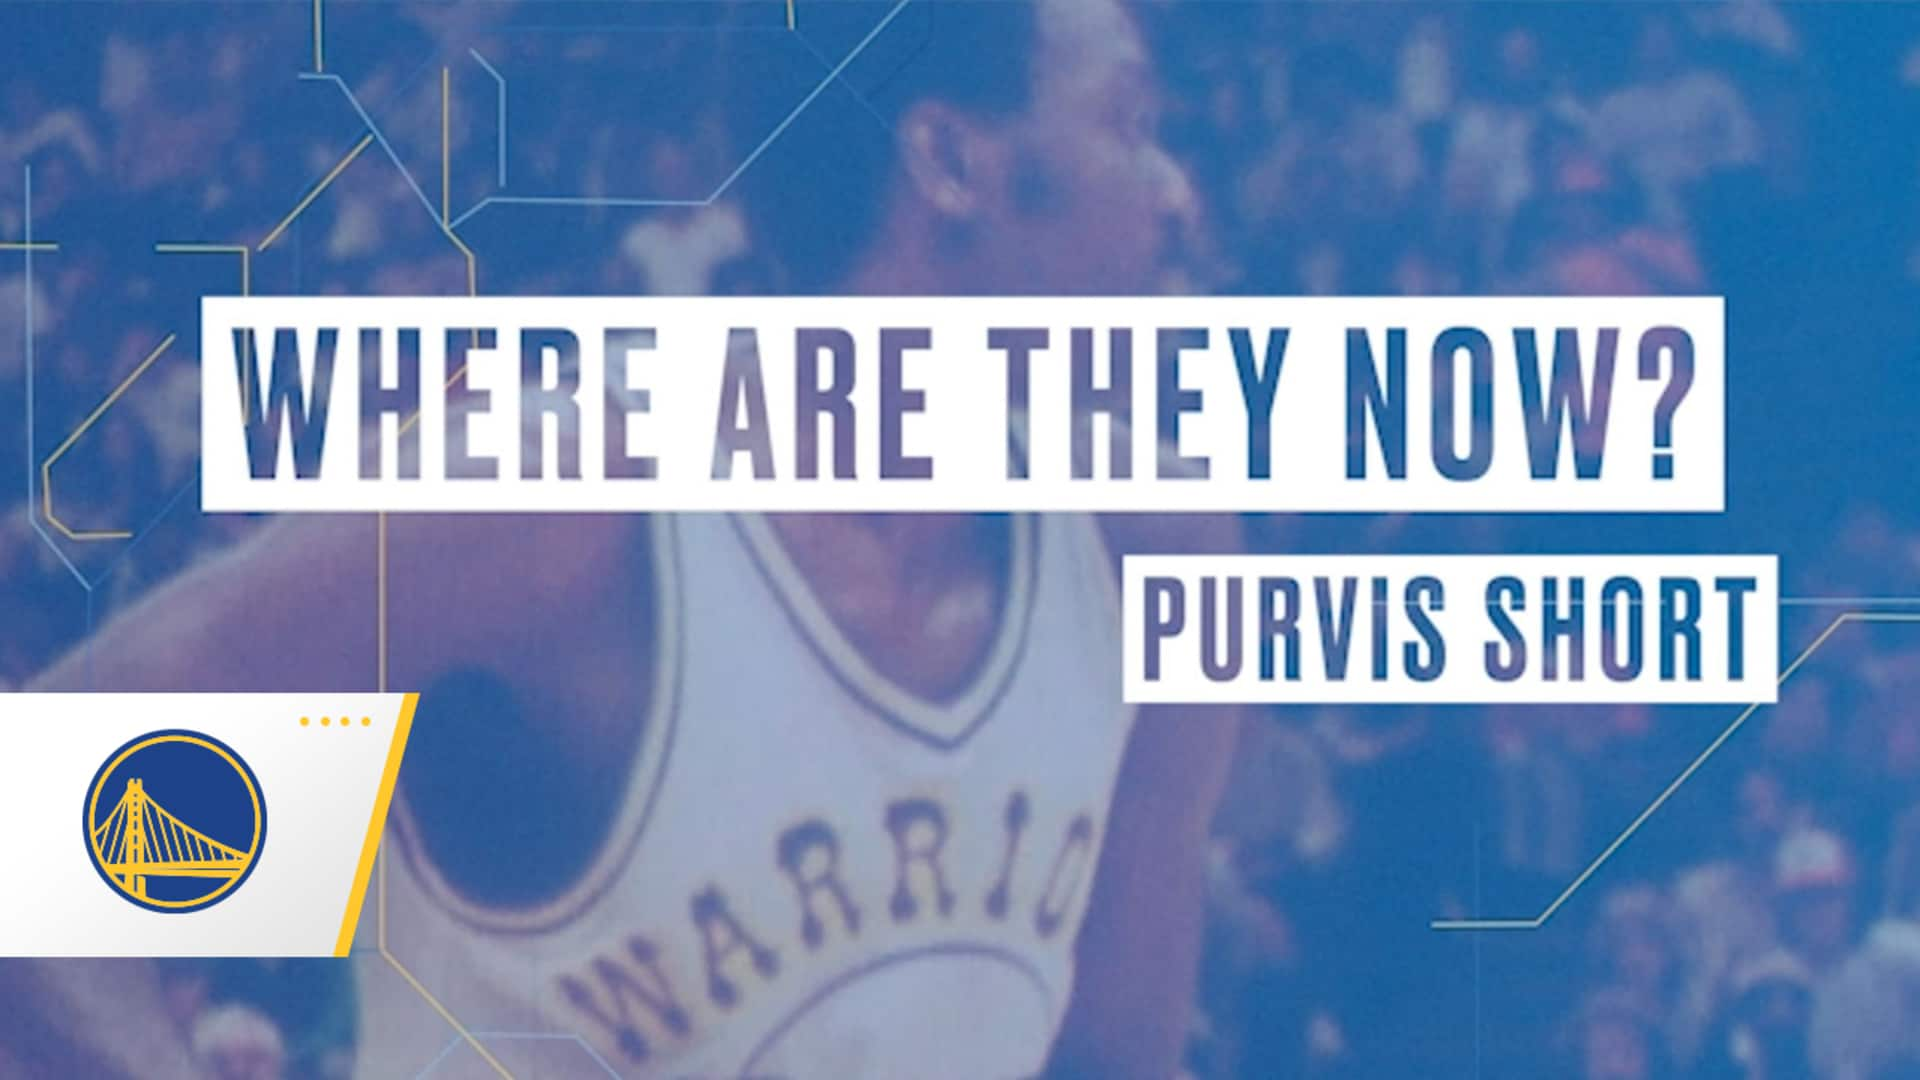 Where Are They Now featuring Purvis Short, Presented by Pepsi